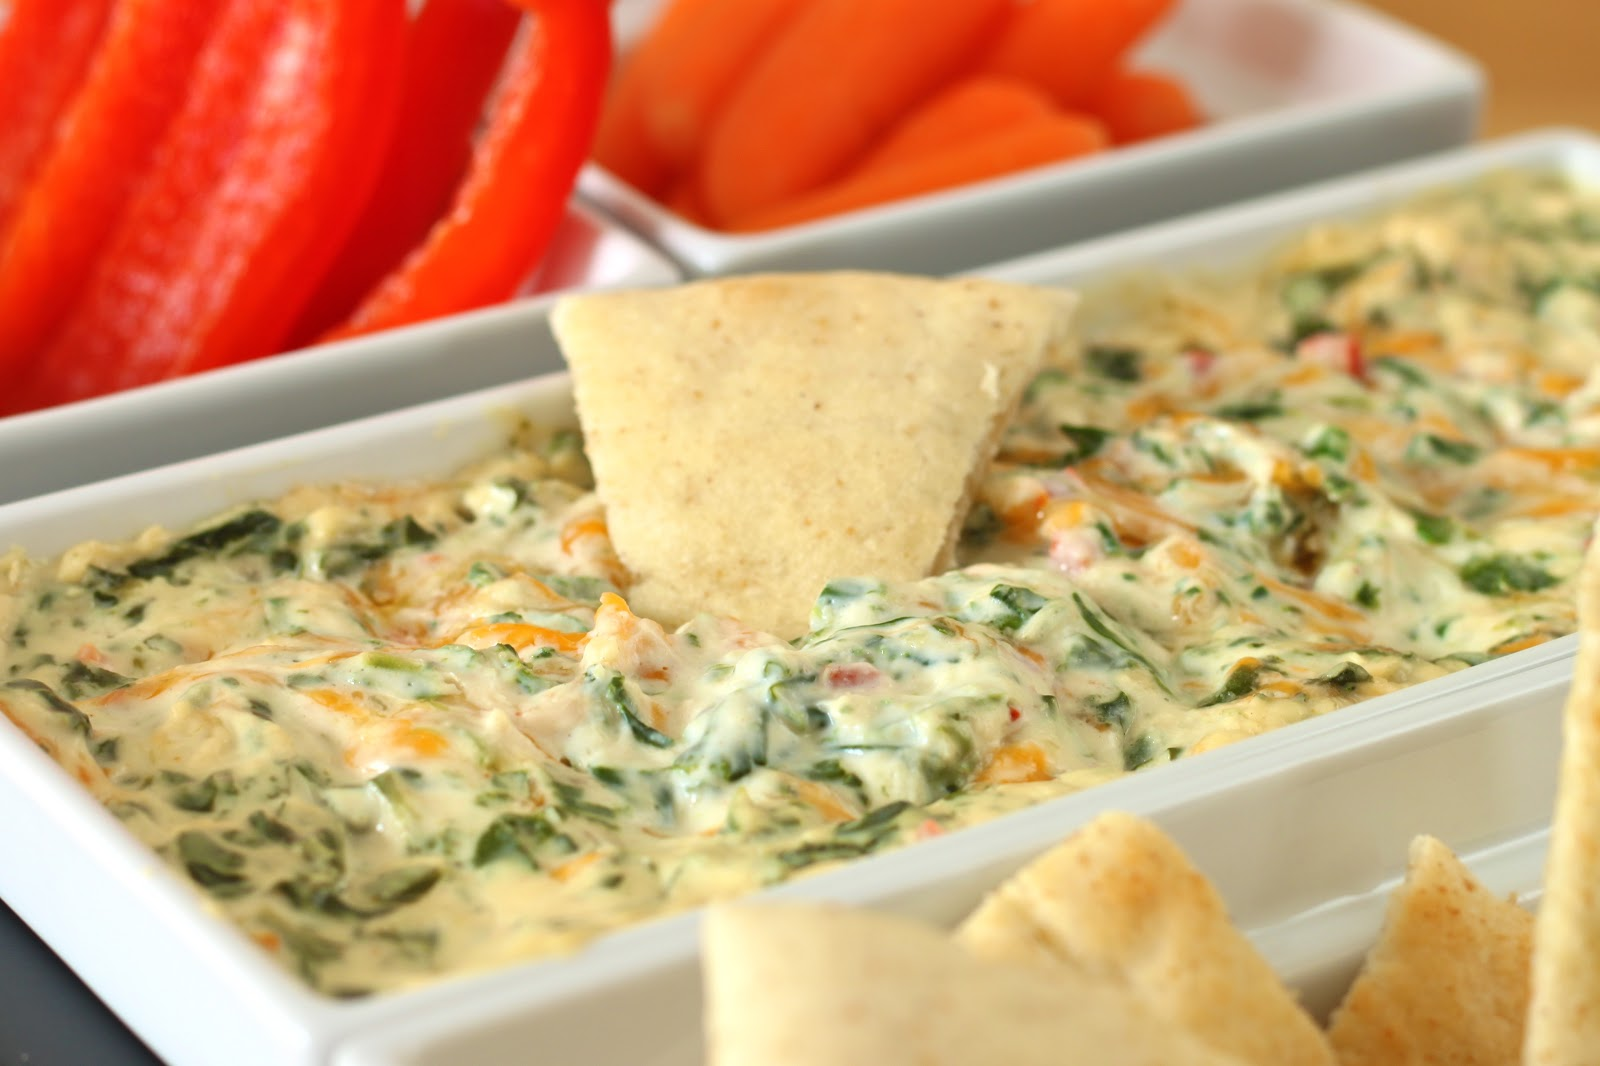 YUMMY RECIPEZZ: Four Cheese Spinach Dip